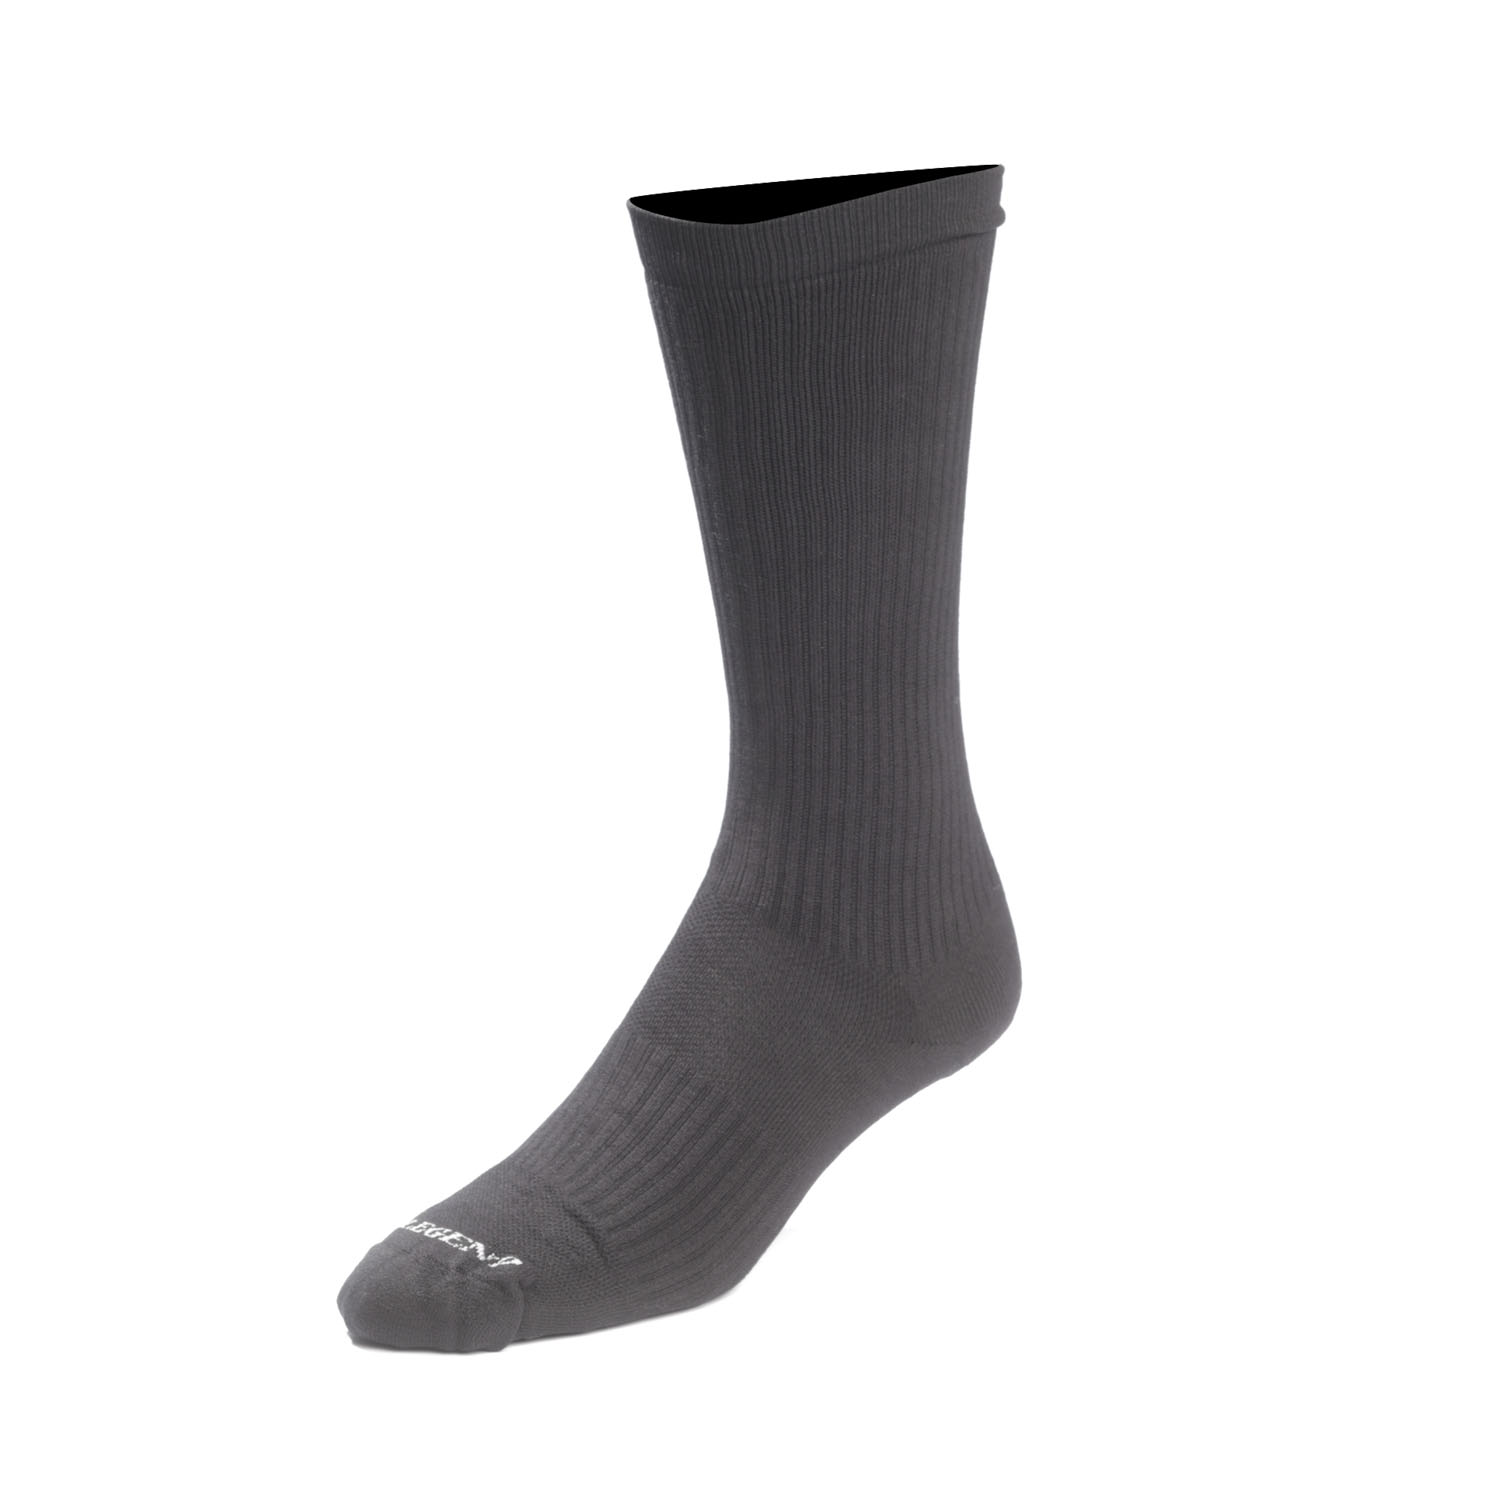 Legend (Warm Weather) Compression Tactical Boot Socks